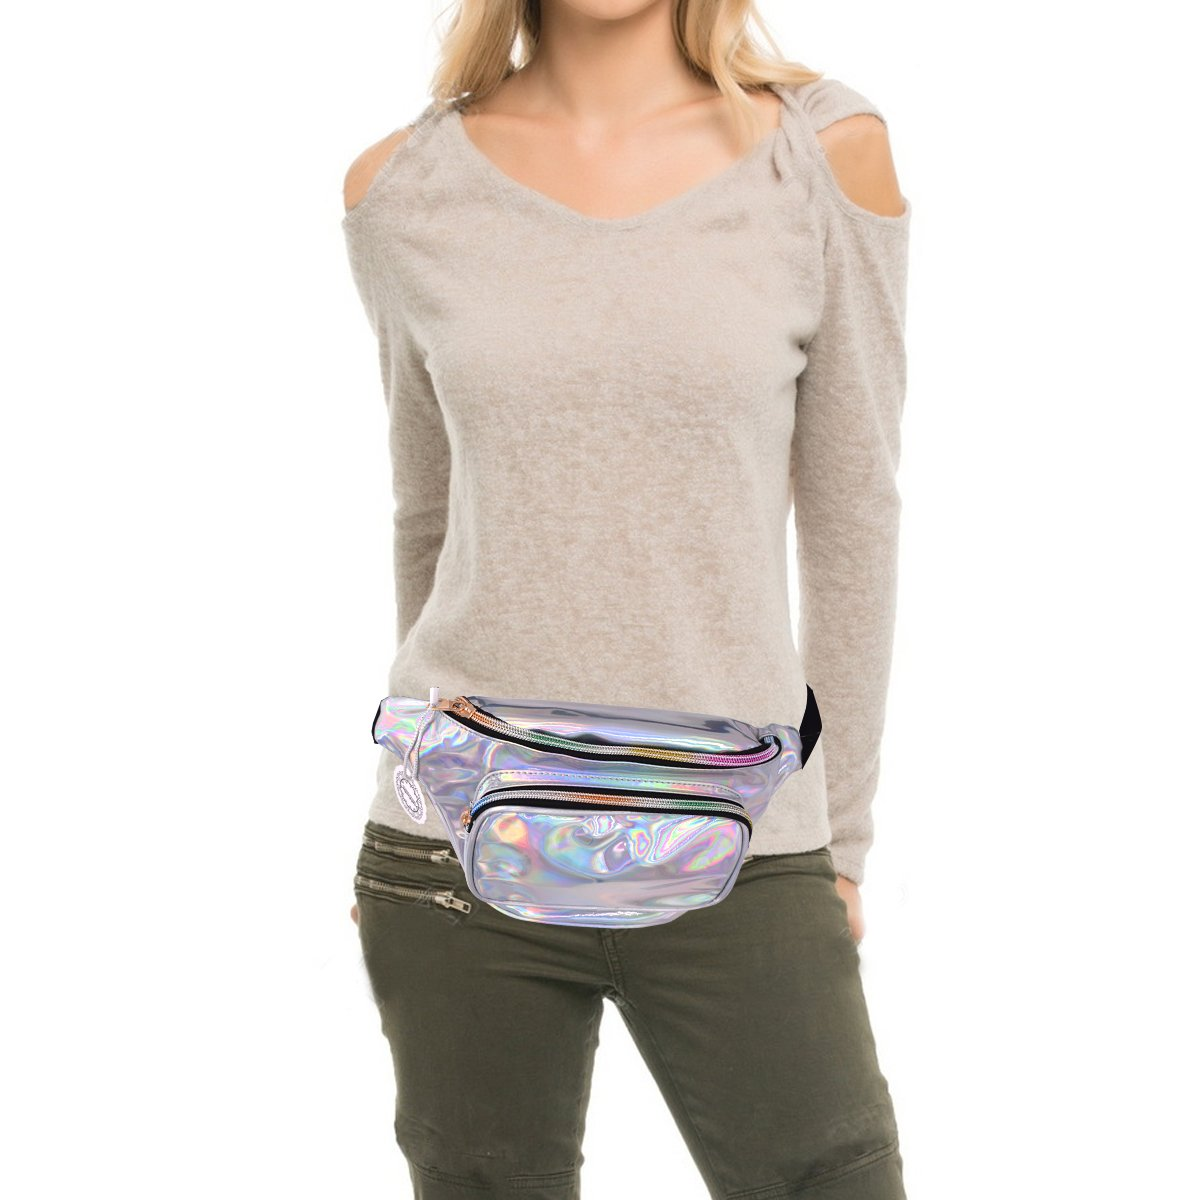 Water Resistant Shiny Neon Fanny Bag for Women Rave Festival Hologram Bum Travel Purse Waist Pack by MOHARY (Image #4)